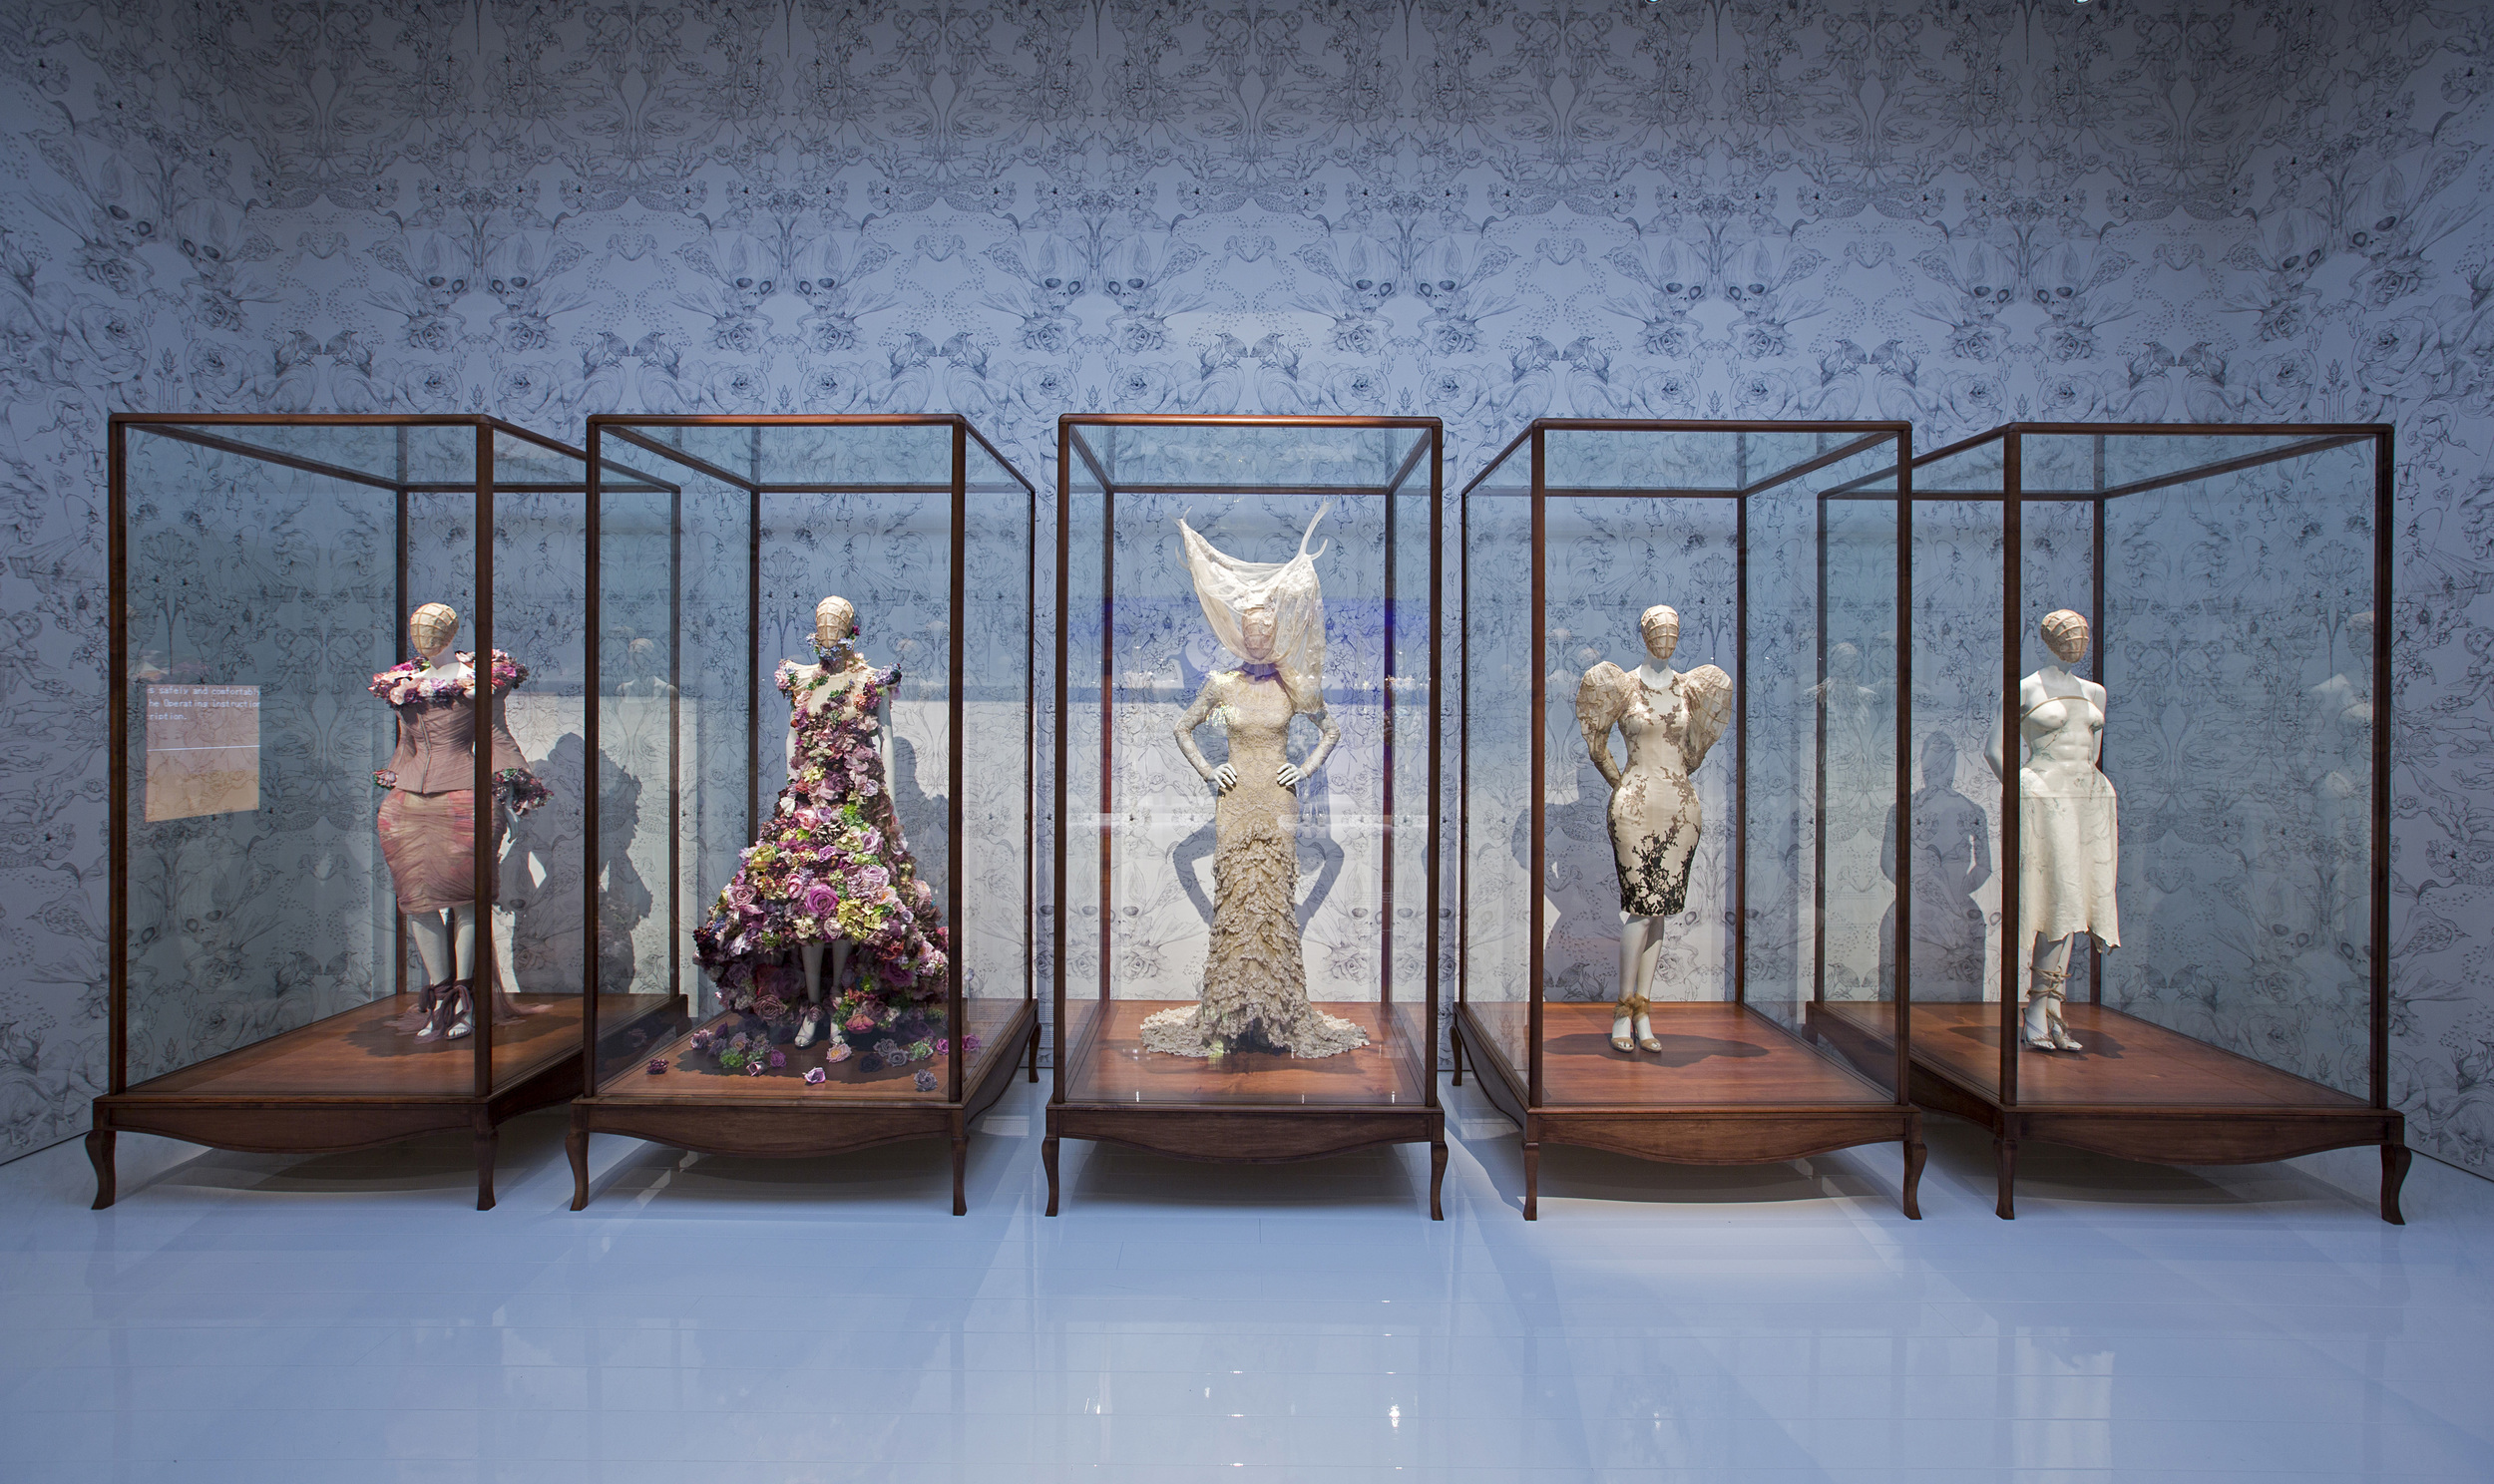 Installation view of 'Romantic Naturalism' gallery